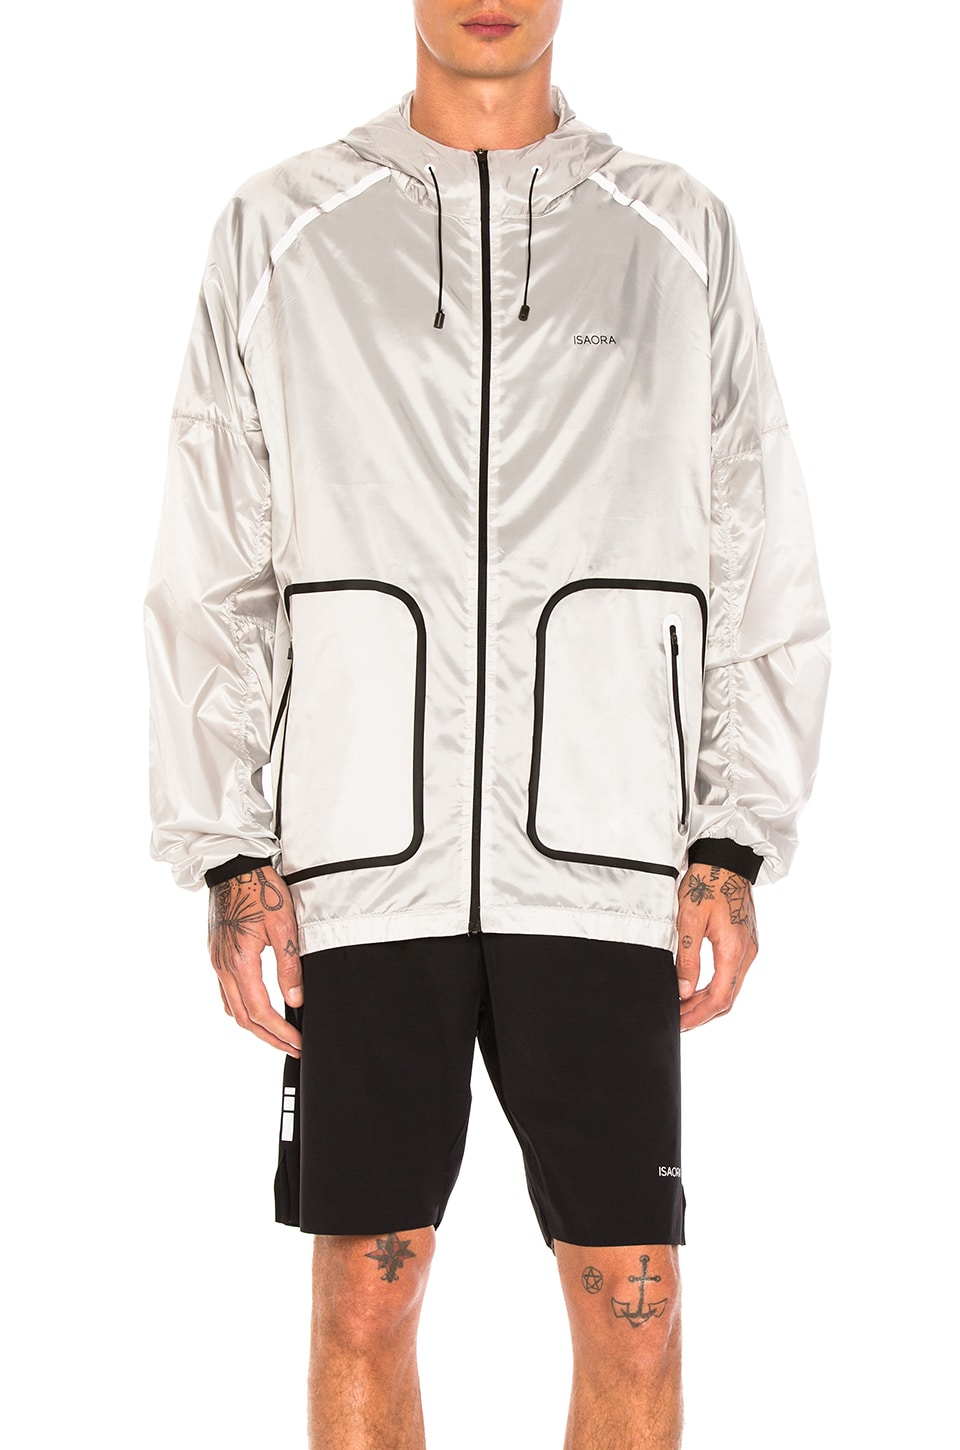 Xytlite Running Windbreaker by ISAORA